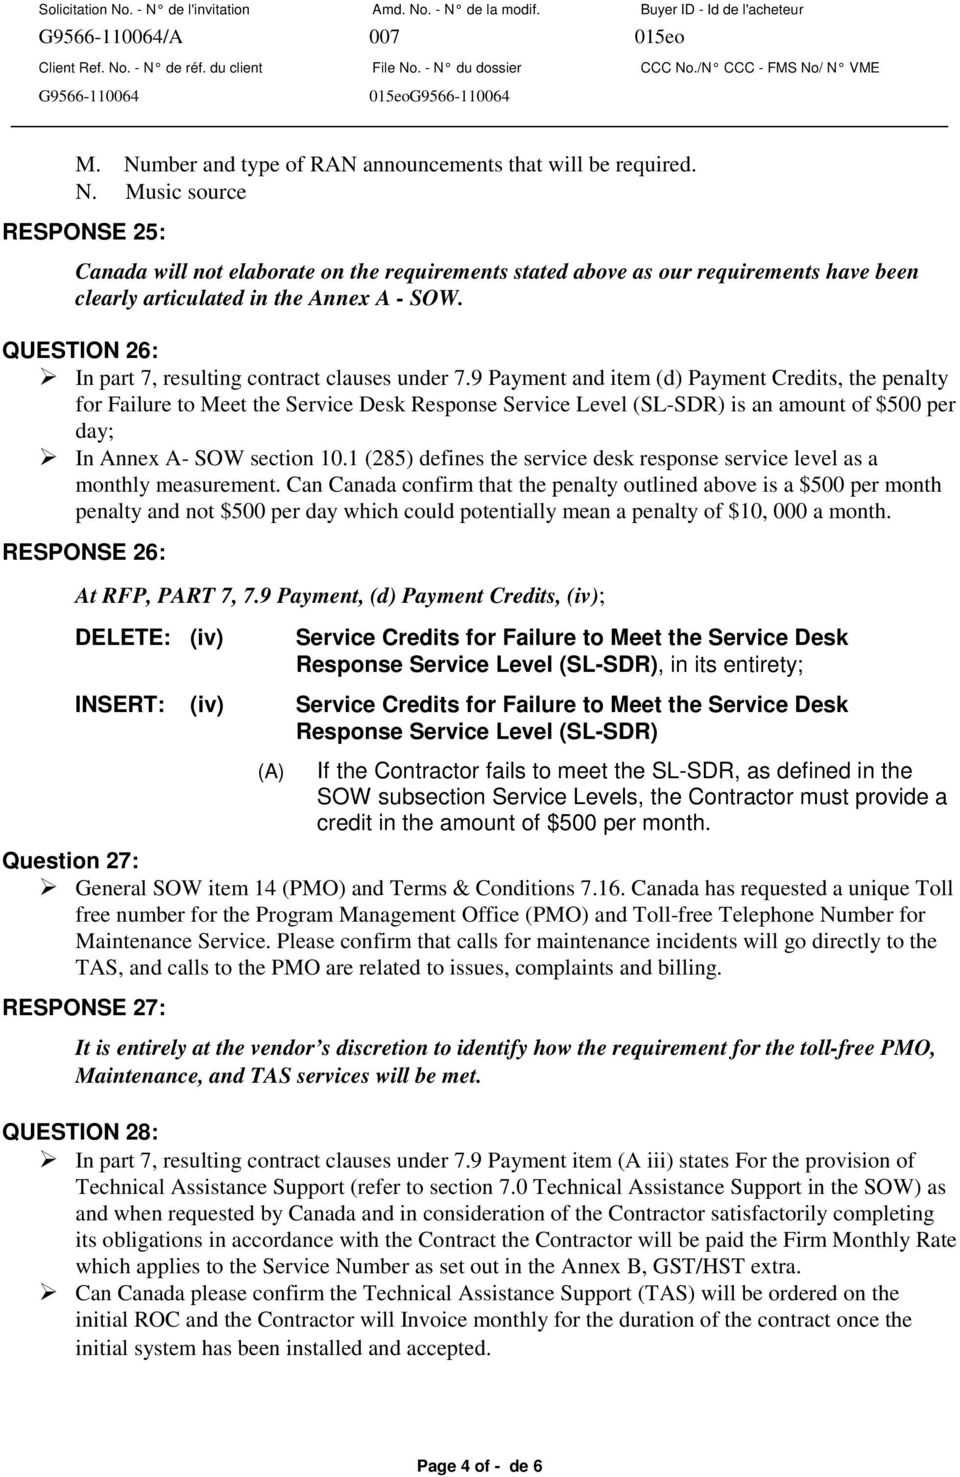 9 Payment and item (d) Payment Credits, the penalty for Failure to Meet the Service Desk Response Service Level (SL-SDR) is an amount of $500 per day; In Annex A- SOW section 10.